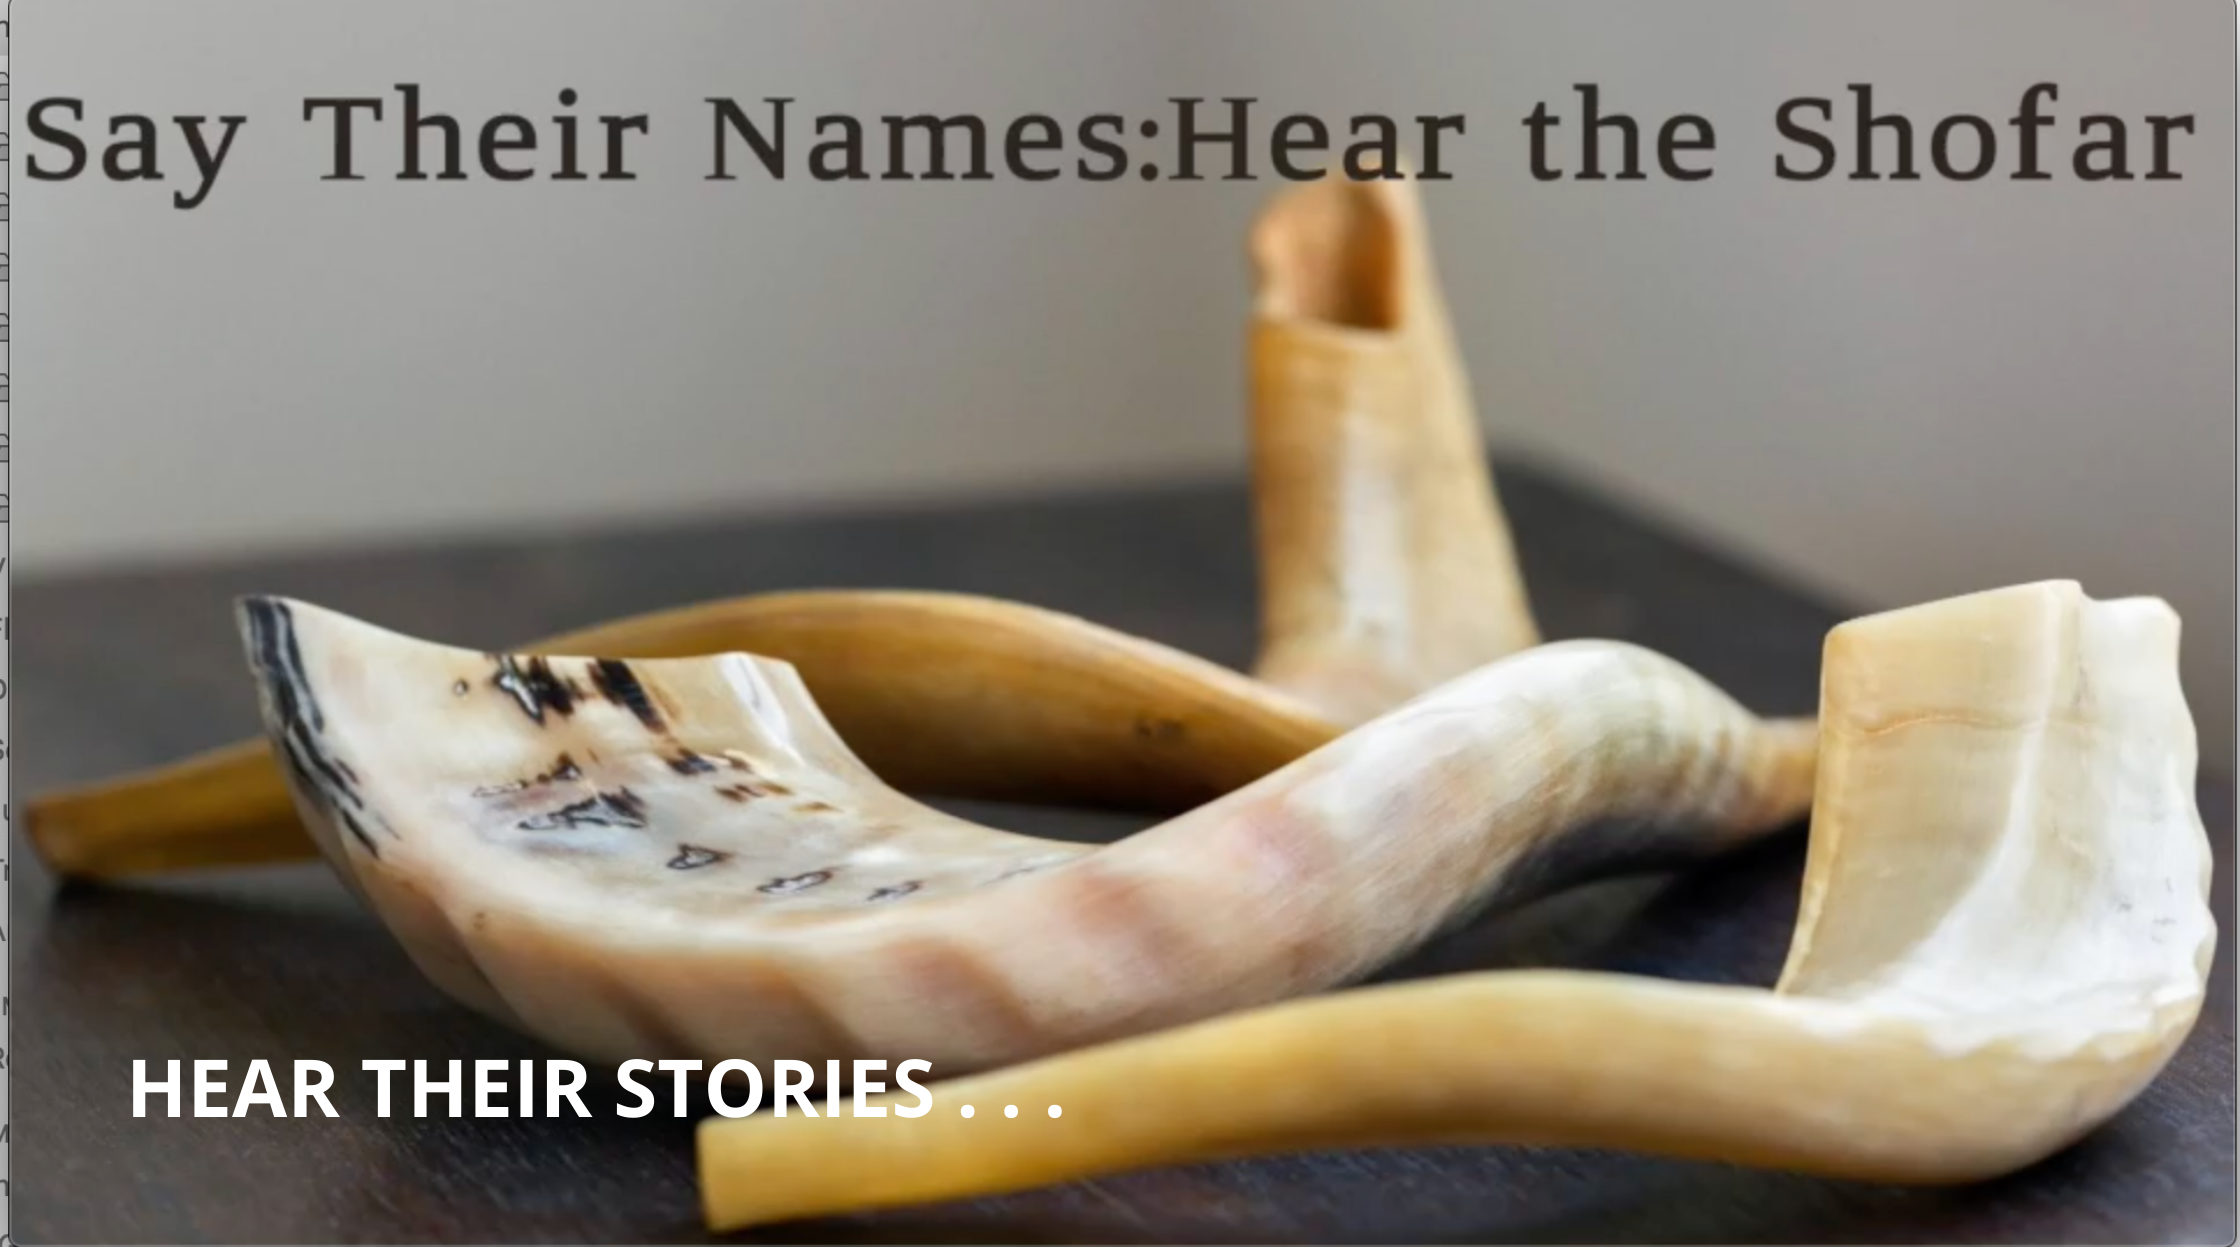 #SayTheirName:HearTheShofar